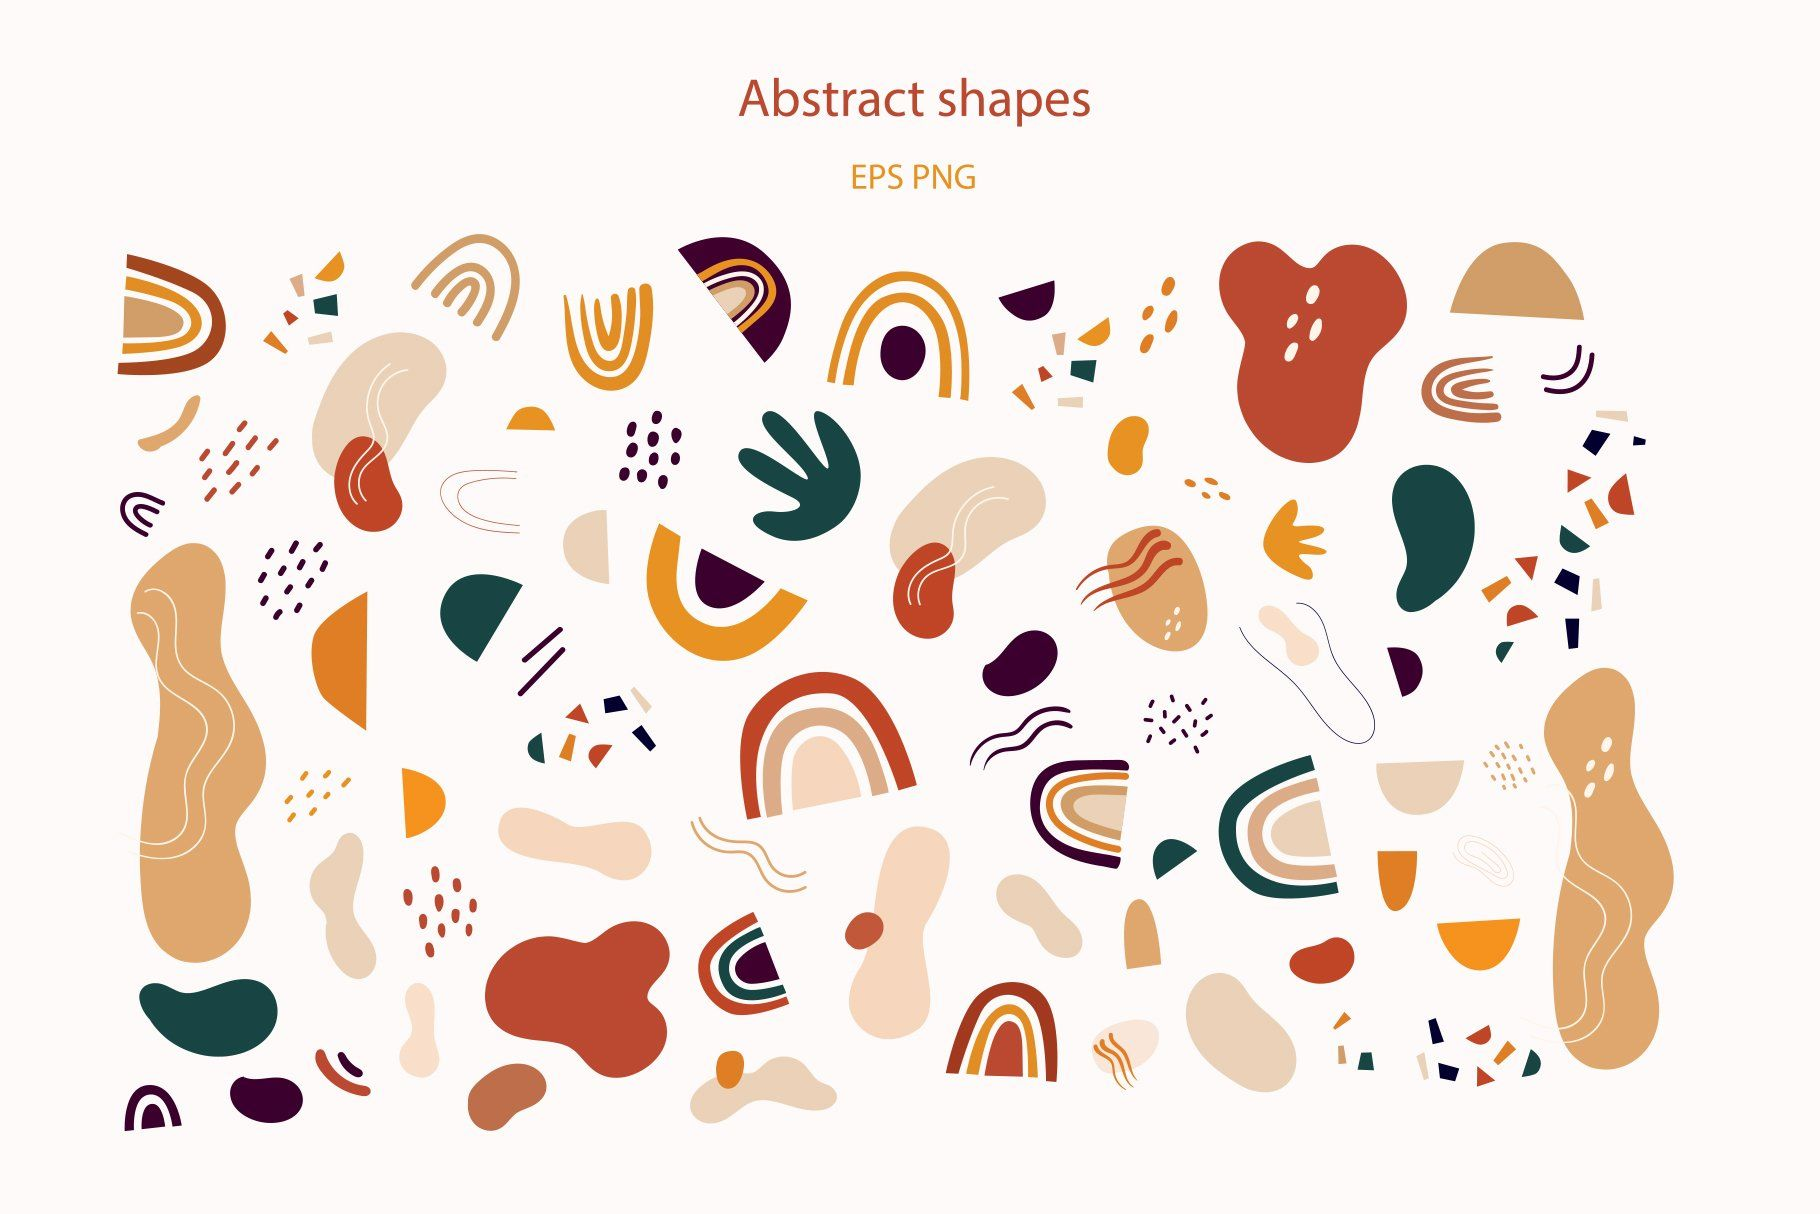 Abstract Shapes Abstract Shapes Print Design Pattern Organic Shape Design